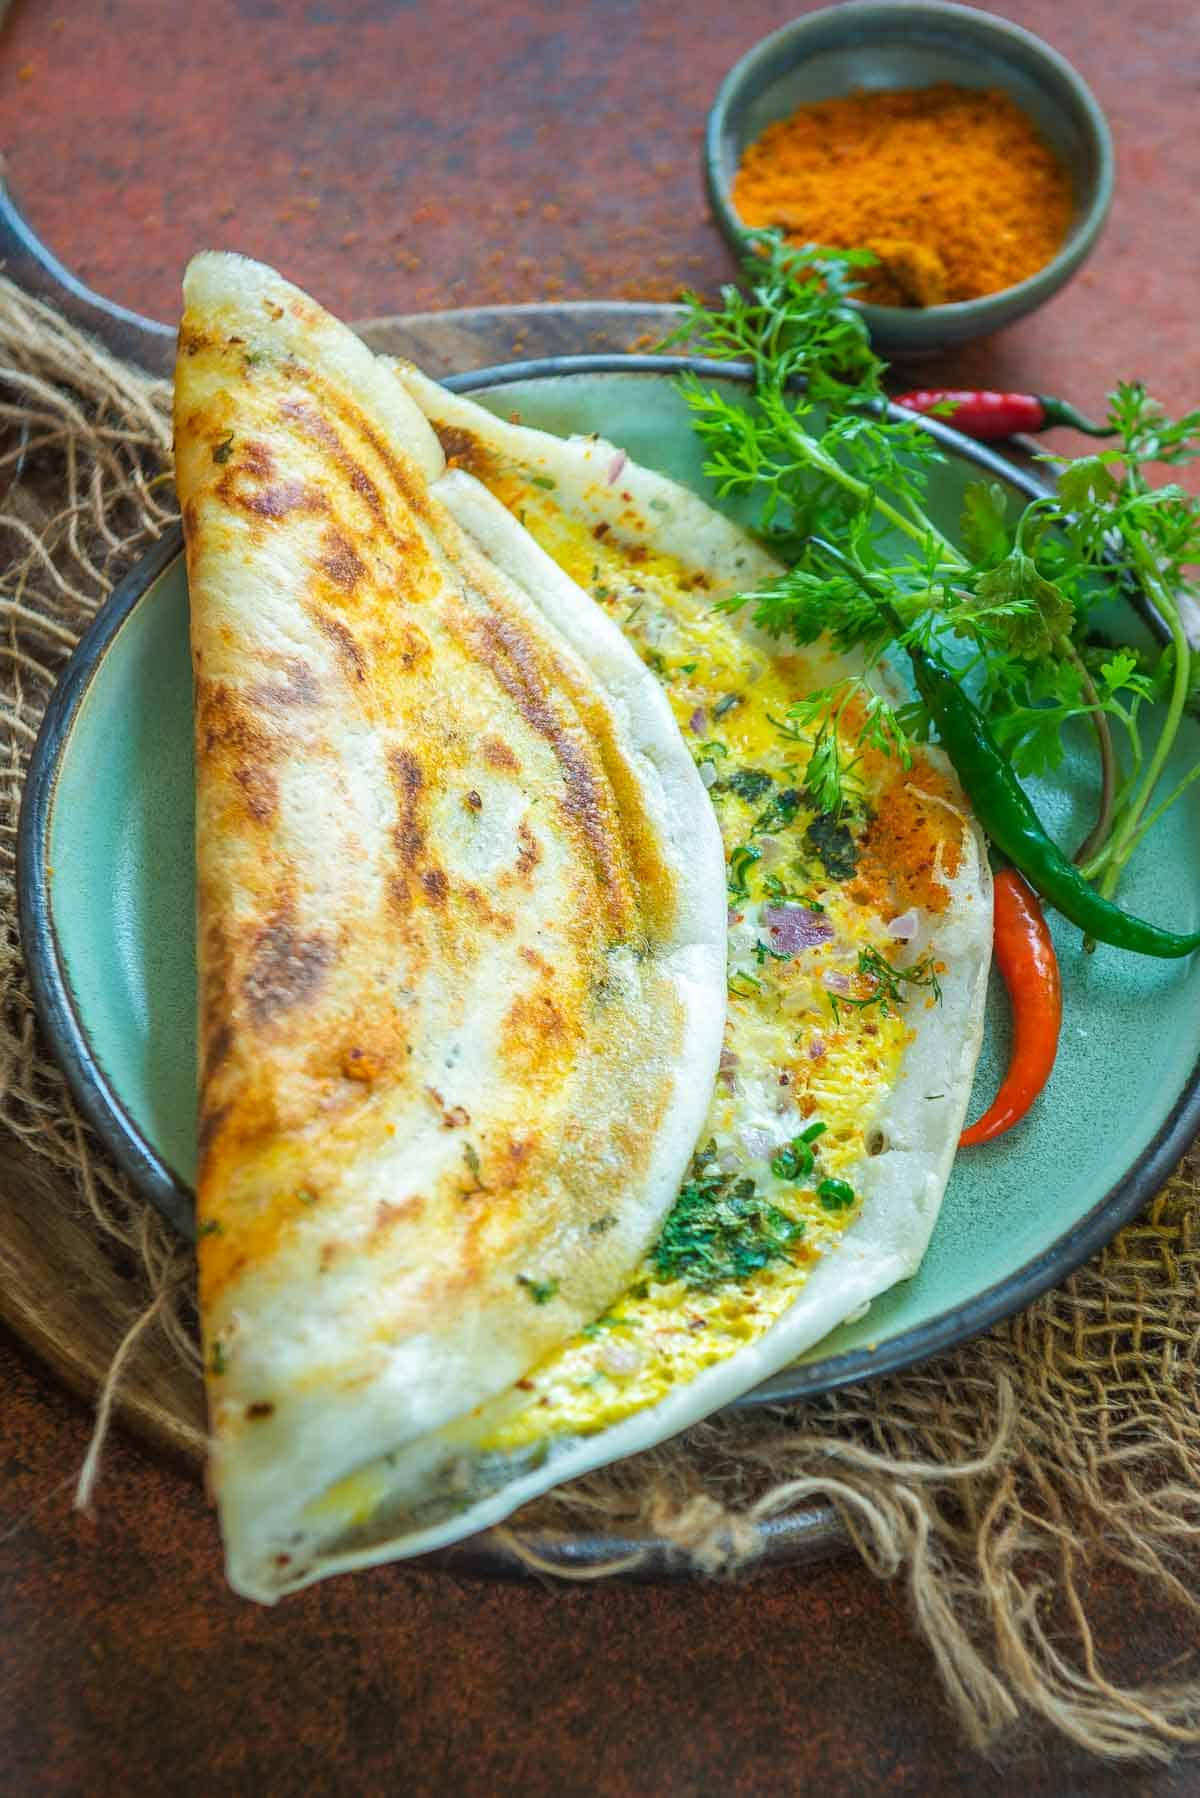 Egg Dosa served on a plate.